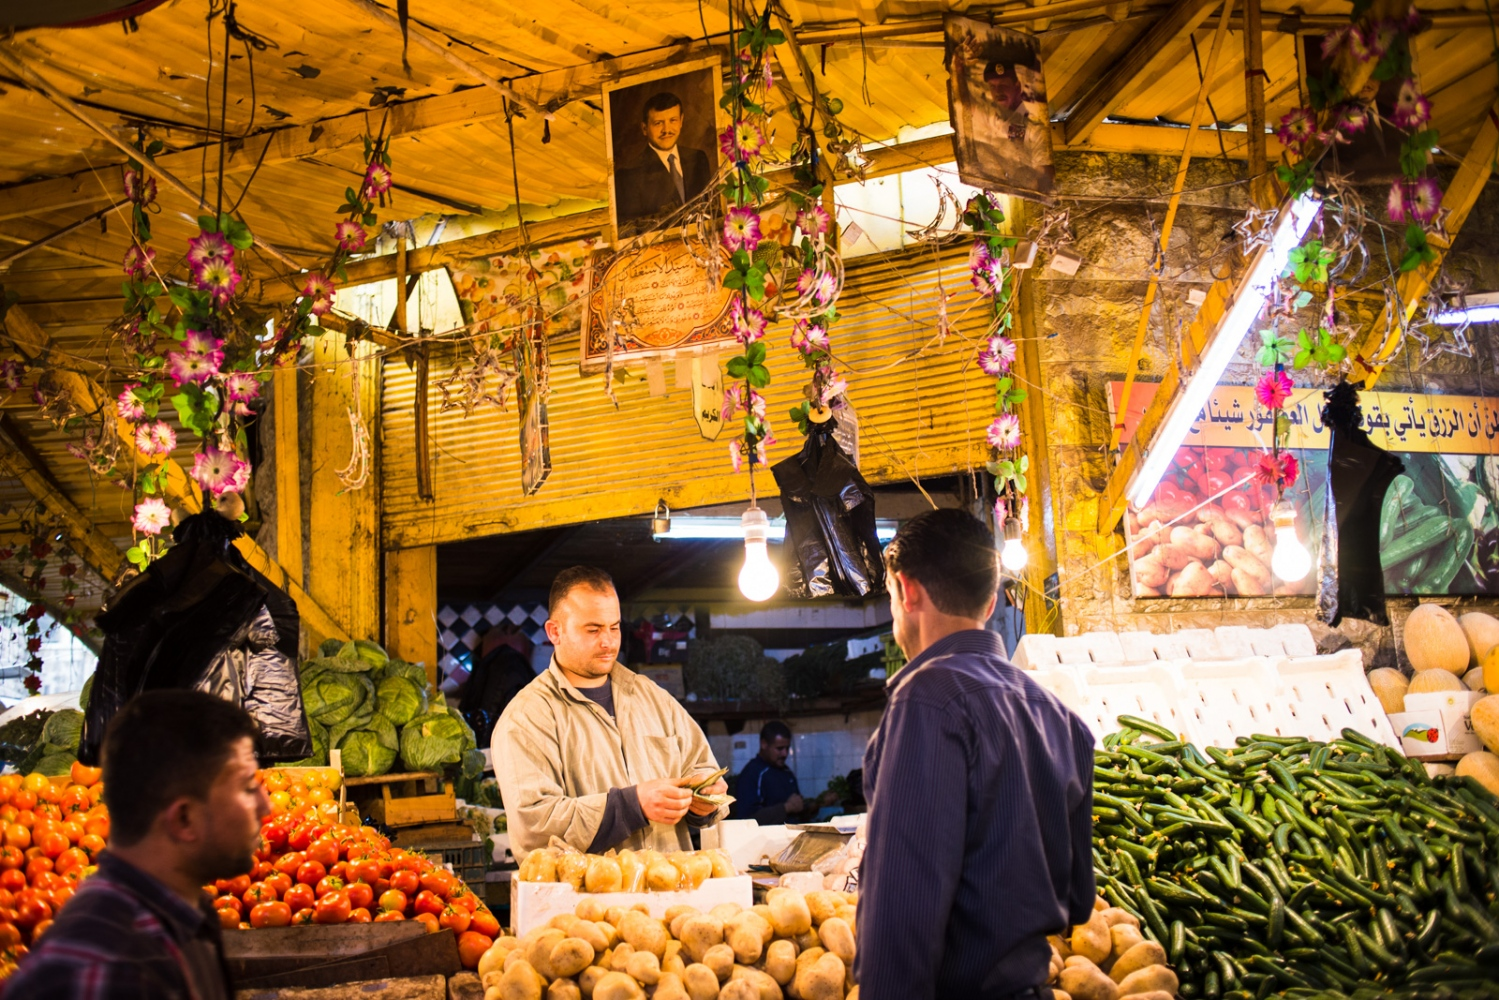 Vendors sell fresh produce at the market in downtown Amman. Like other countries in the MENA region, Jordan imports well over 50 percent of its food. Agriculture in Jordan is only possible due to costly government subsidies and water-intensive irrigation.